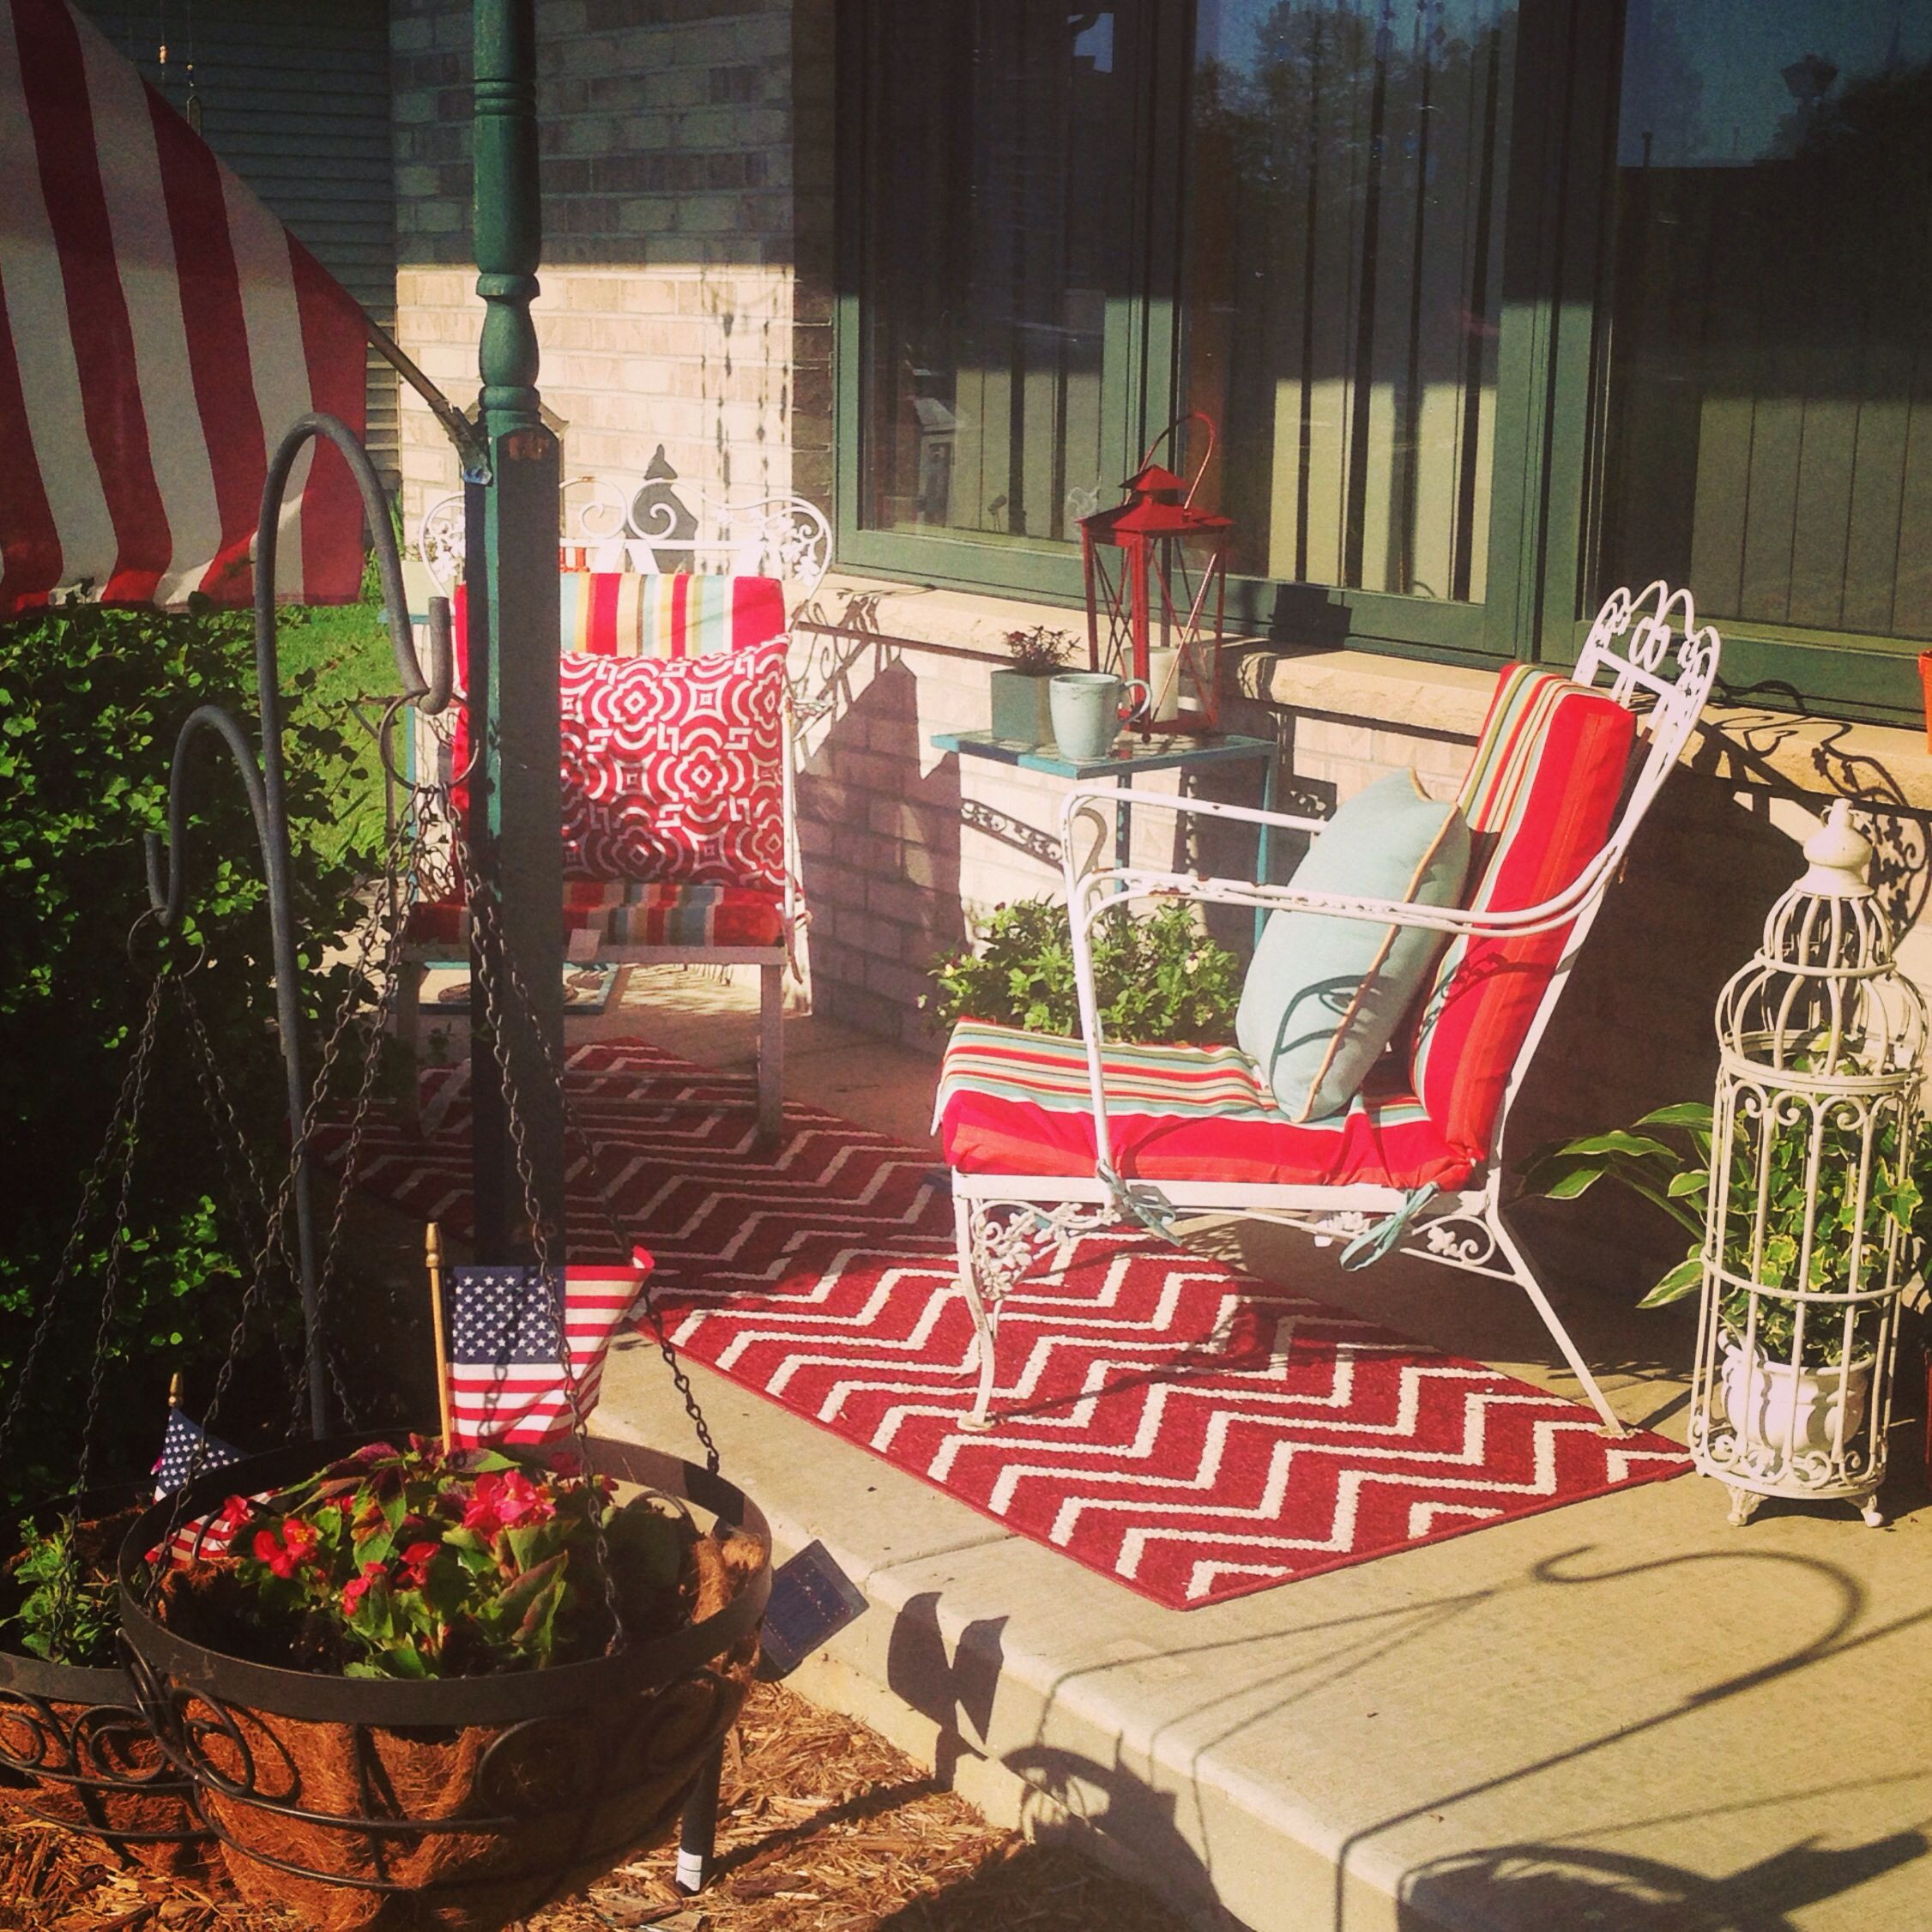 Small porch idea... French, bohemian, country... 2 vintage rod iron chairs, mixed with new and old, eclectic yet balanced tables, planters, and fabrics.  Cheery and comfortable...on a single mom budget!